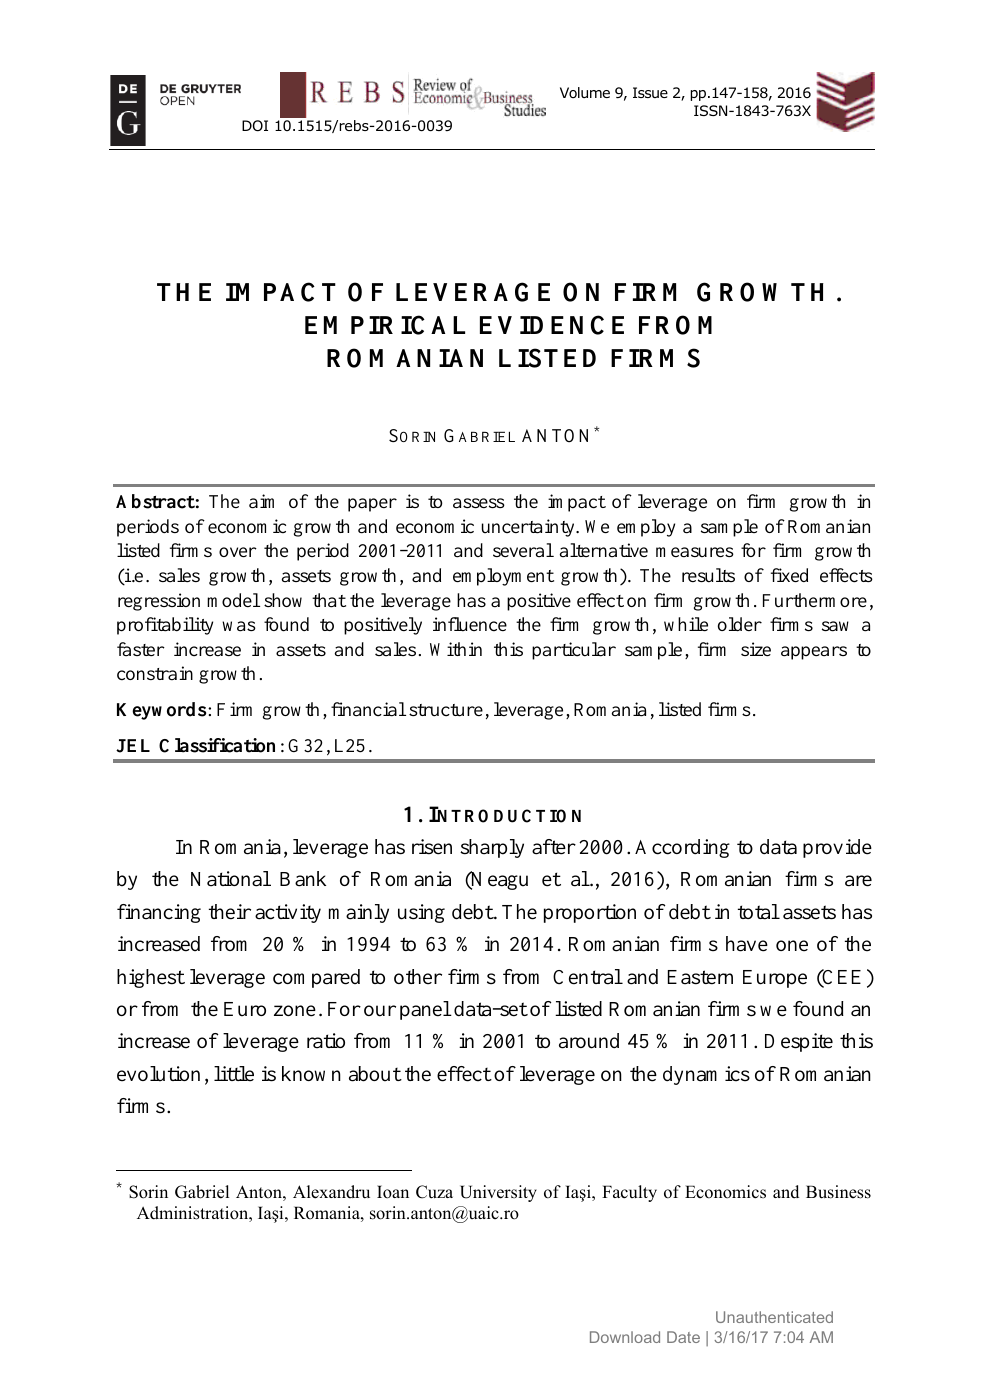 The Impact of Leverage on Firm Growth  Empirical Evidence from